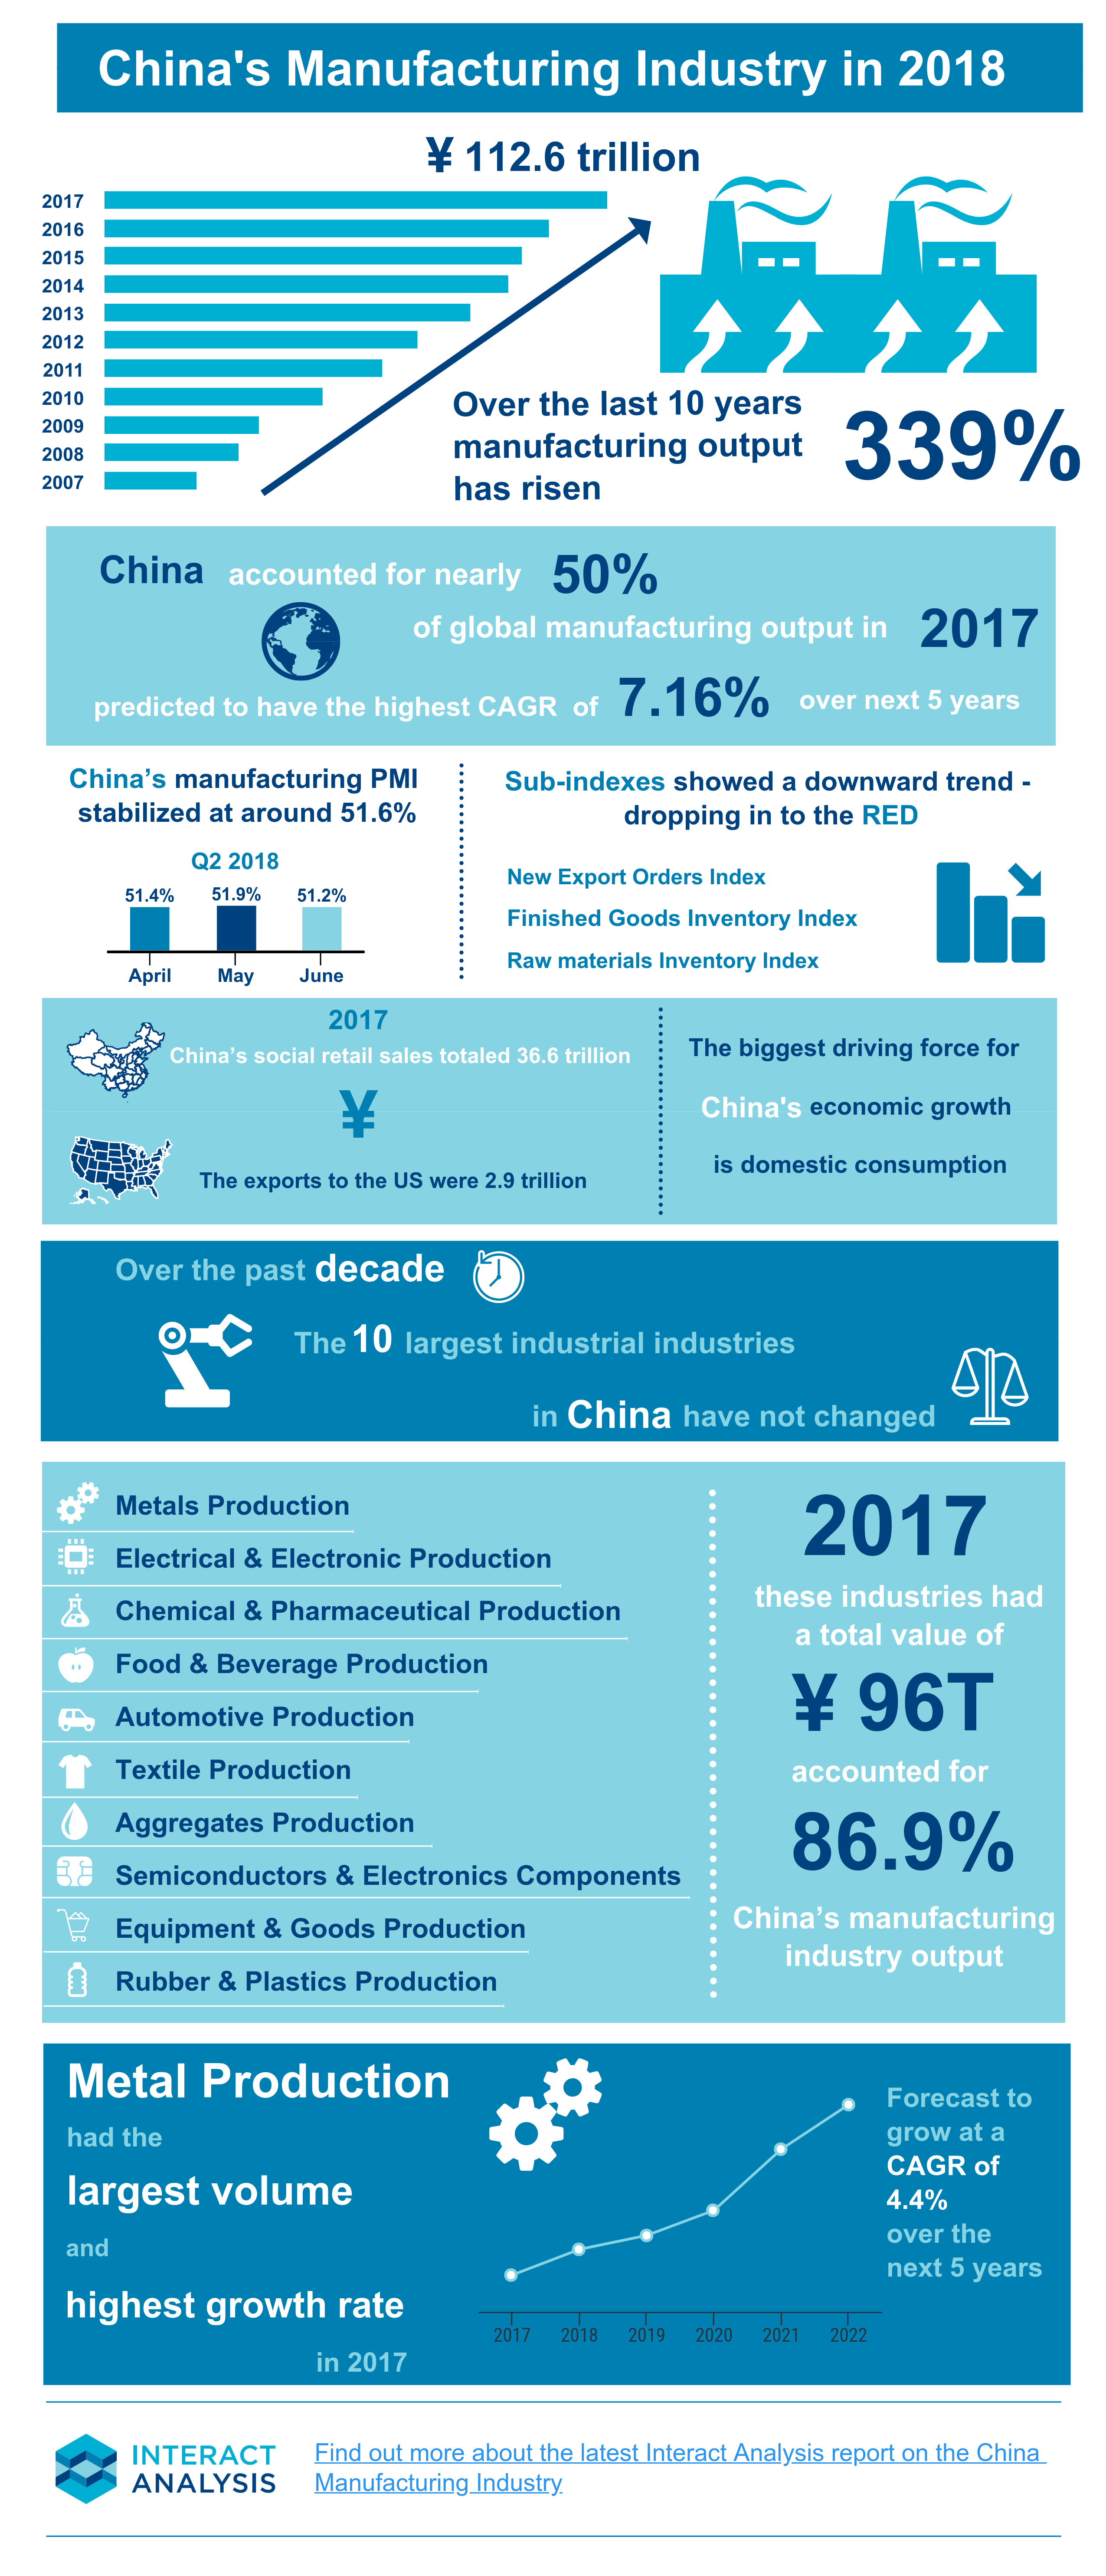 China's Manufacturing Industry in 2018 - Interact Analysis